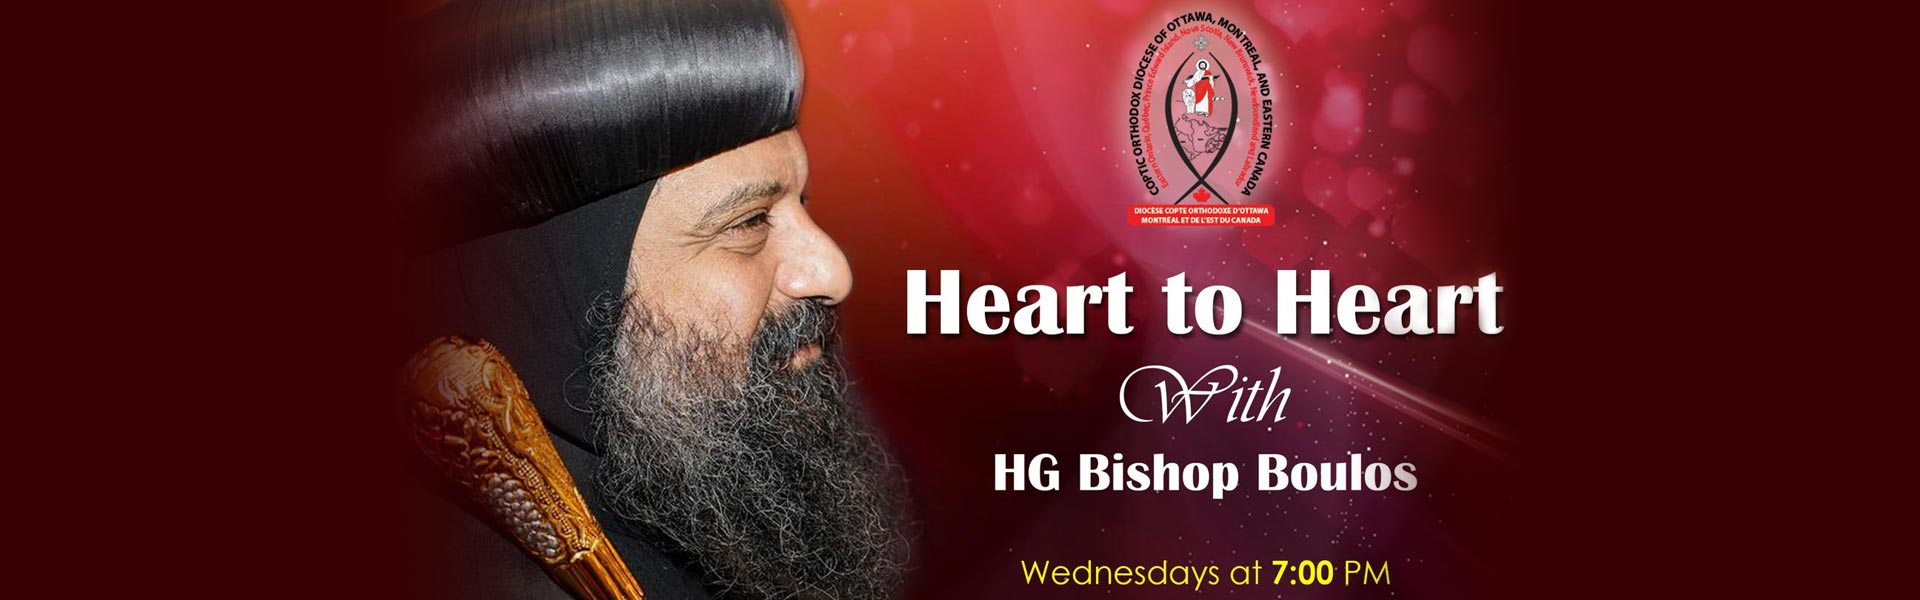 Heart to Heart with HG Bishop Boulos